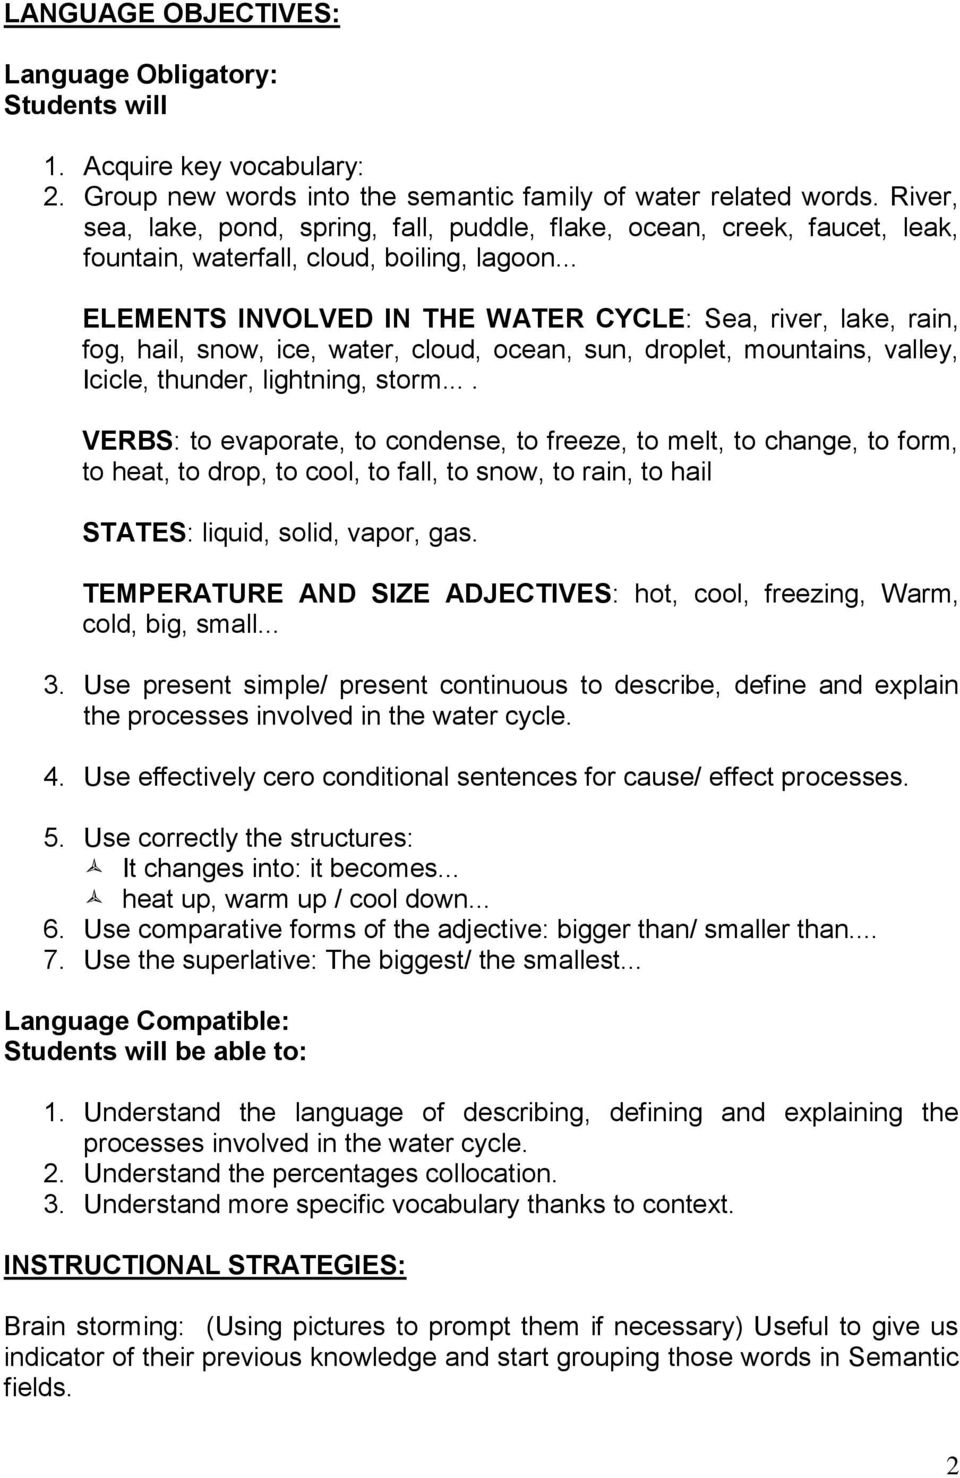 .. ELEMENTS INVOLVED IN THE WATER CYCLE: Sea, river, lake, rain, fog, hail, snow, ice, water, cloud, ocean, sun, droplet, mountains, valley, Icicle, thunder, lightning, storm.